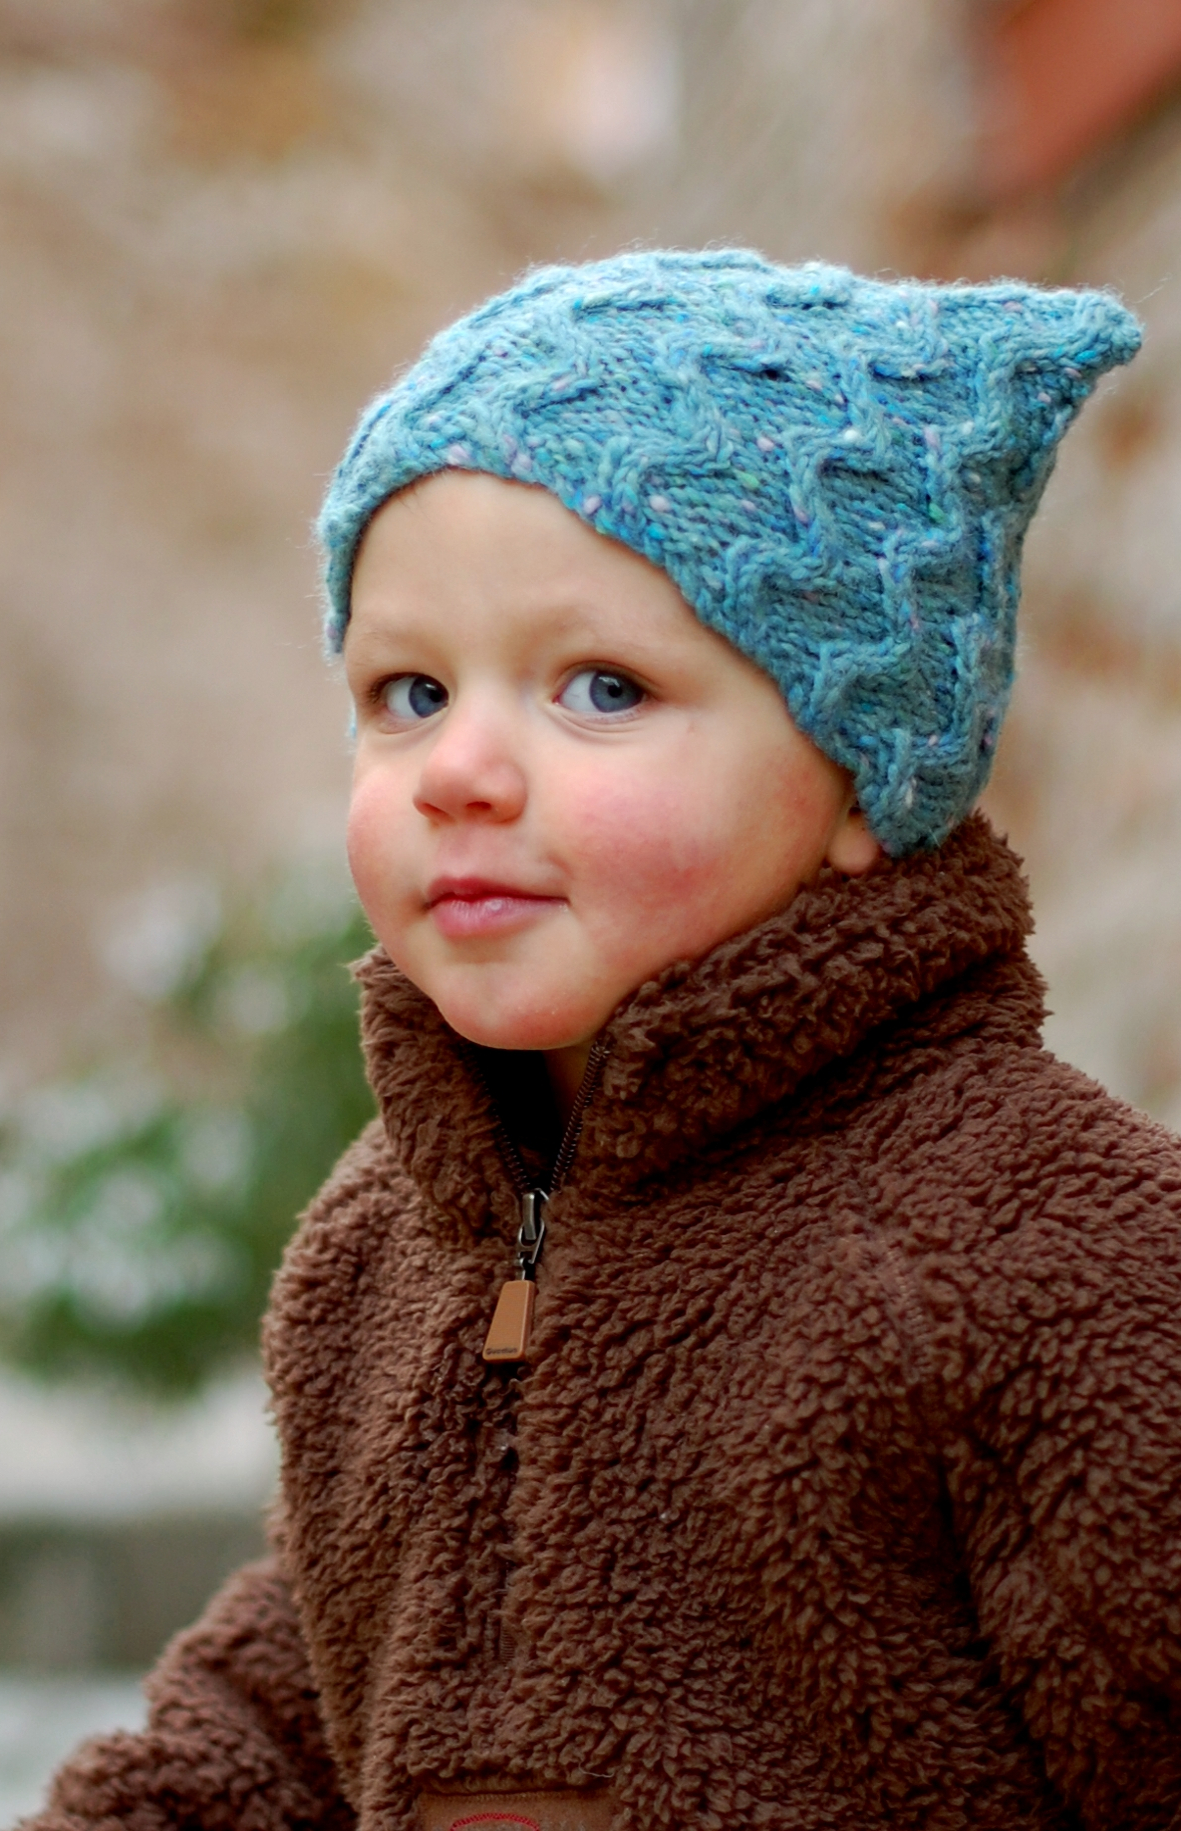 Tinker cabled Hat hand knitting pattern